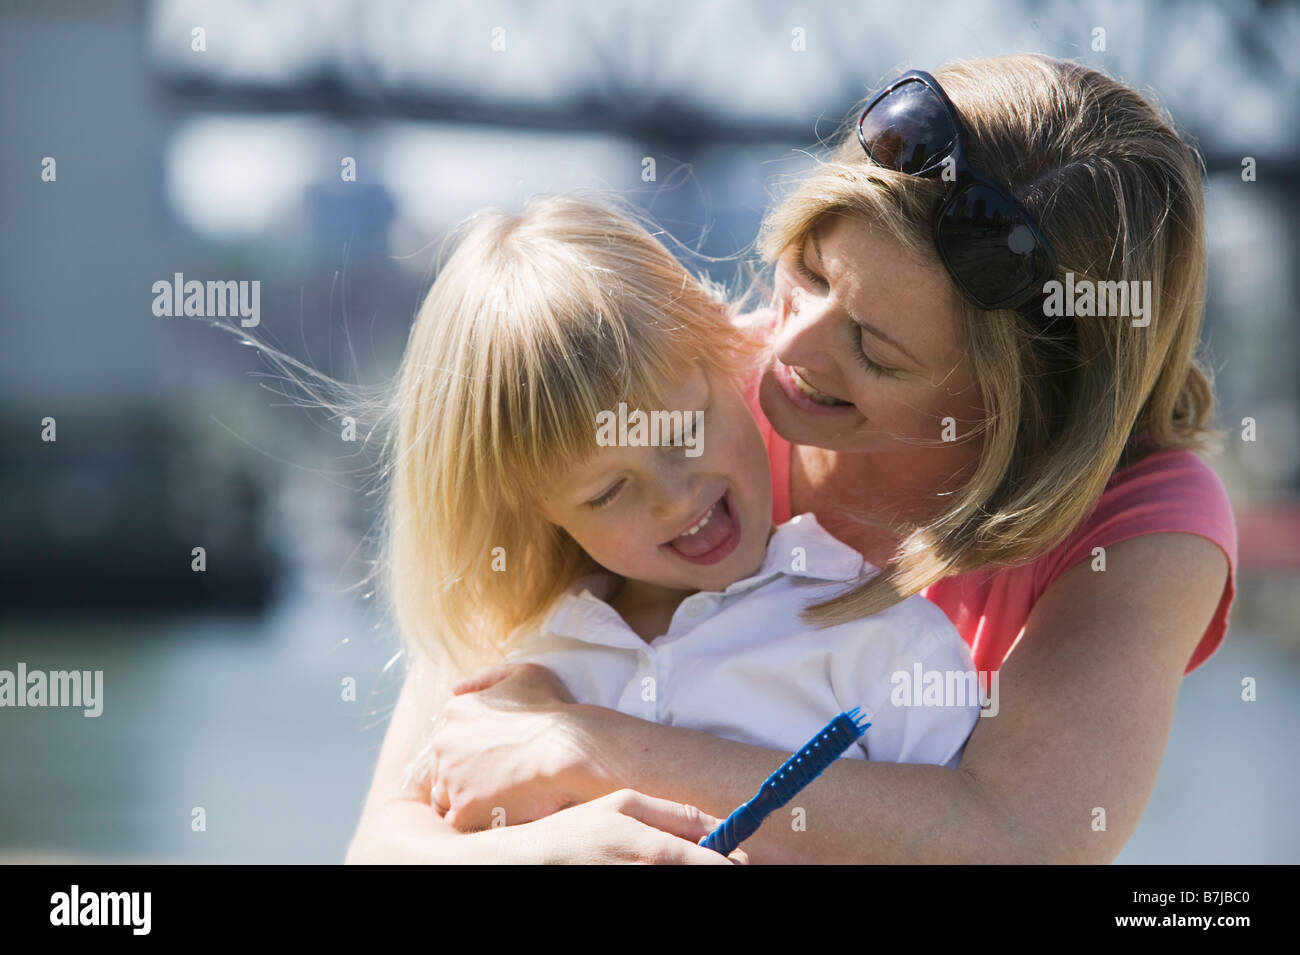 Caucasian Mom and 4 year old Daughter. Sunset Beach, Vancouver, BC - Stock Image